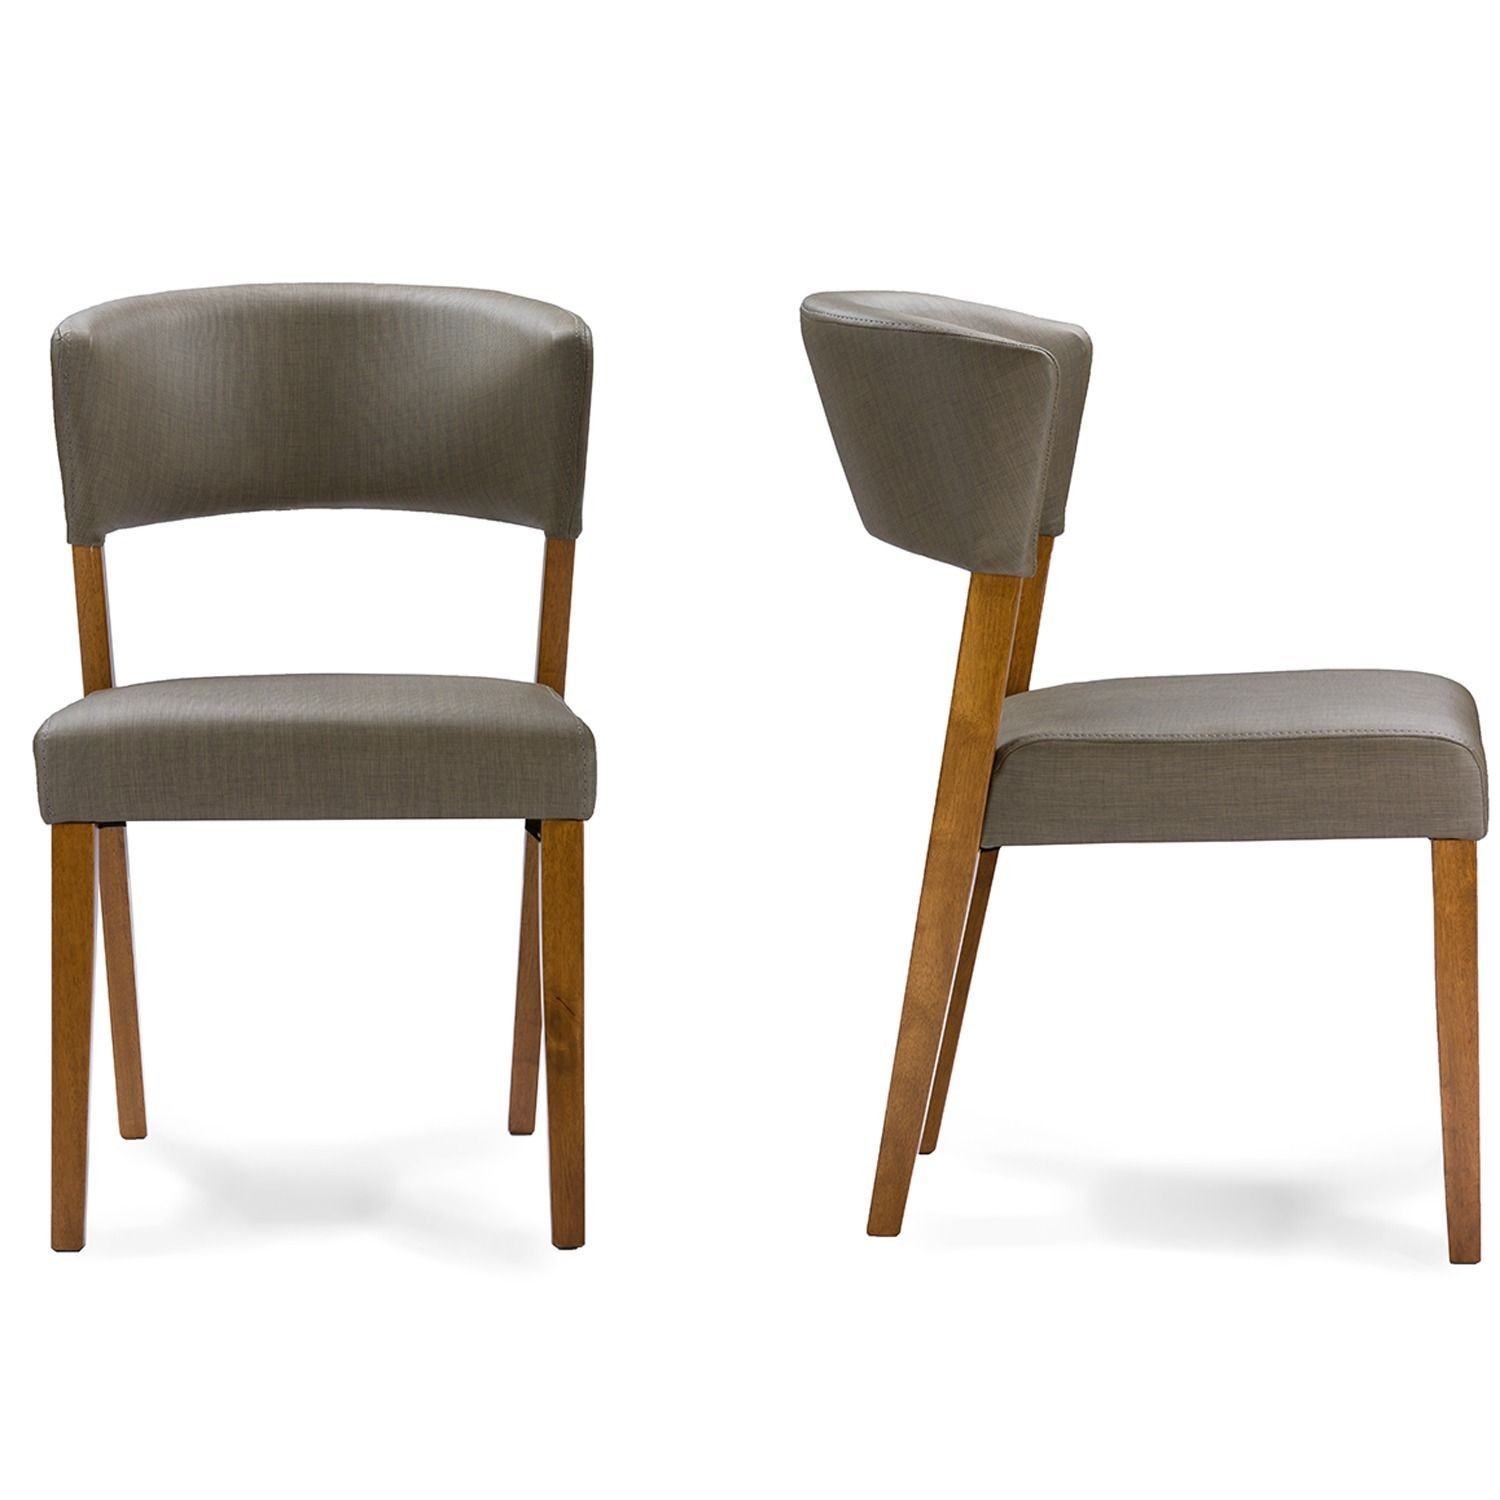 The Montreal Mid Century Dining Chairs Have Curved Backrest And Wide Seat Cushions They Are Ideal For Your Rooms Quick Elegant Makeover